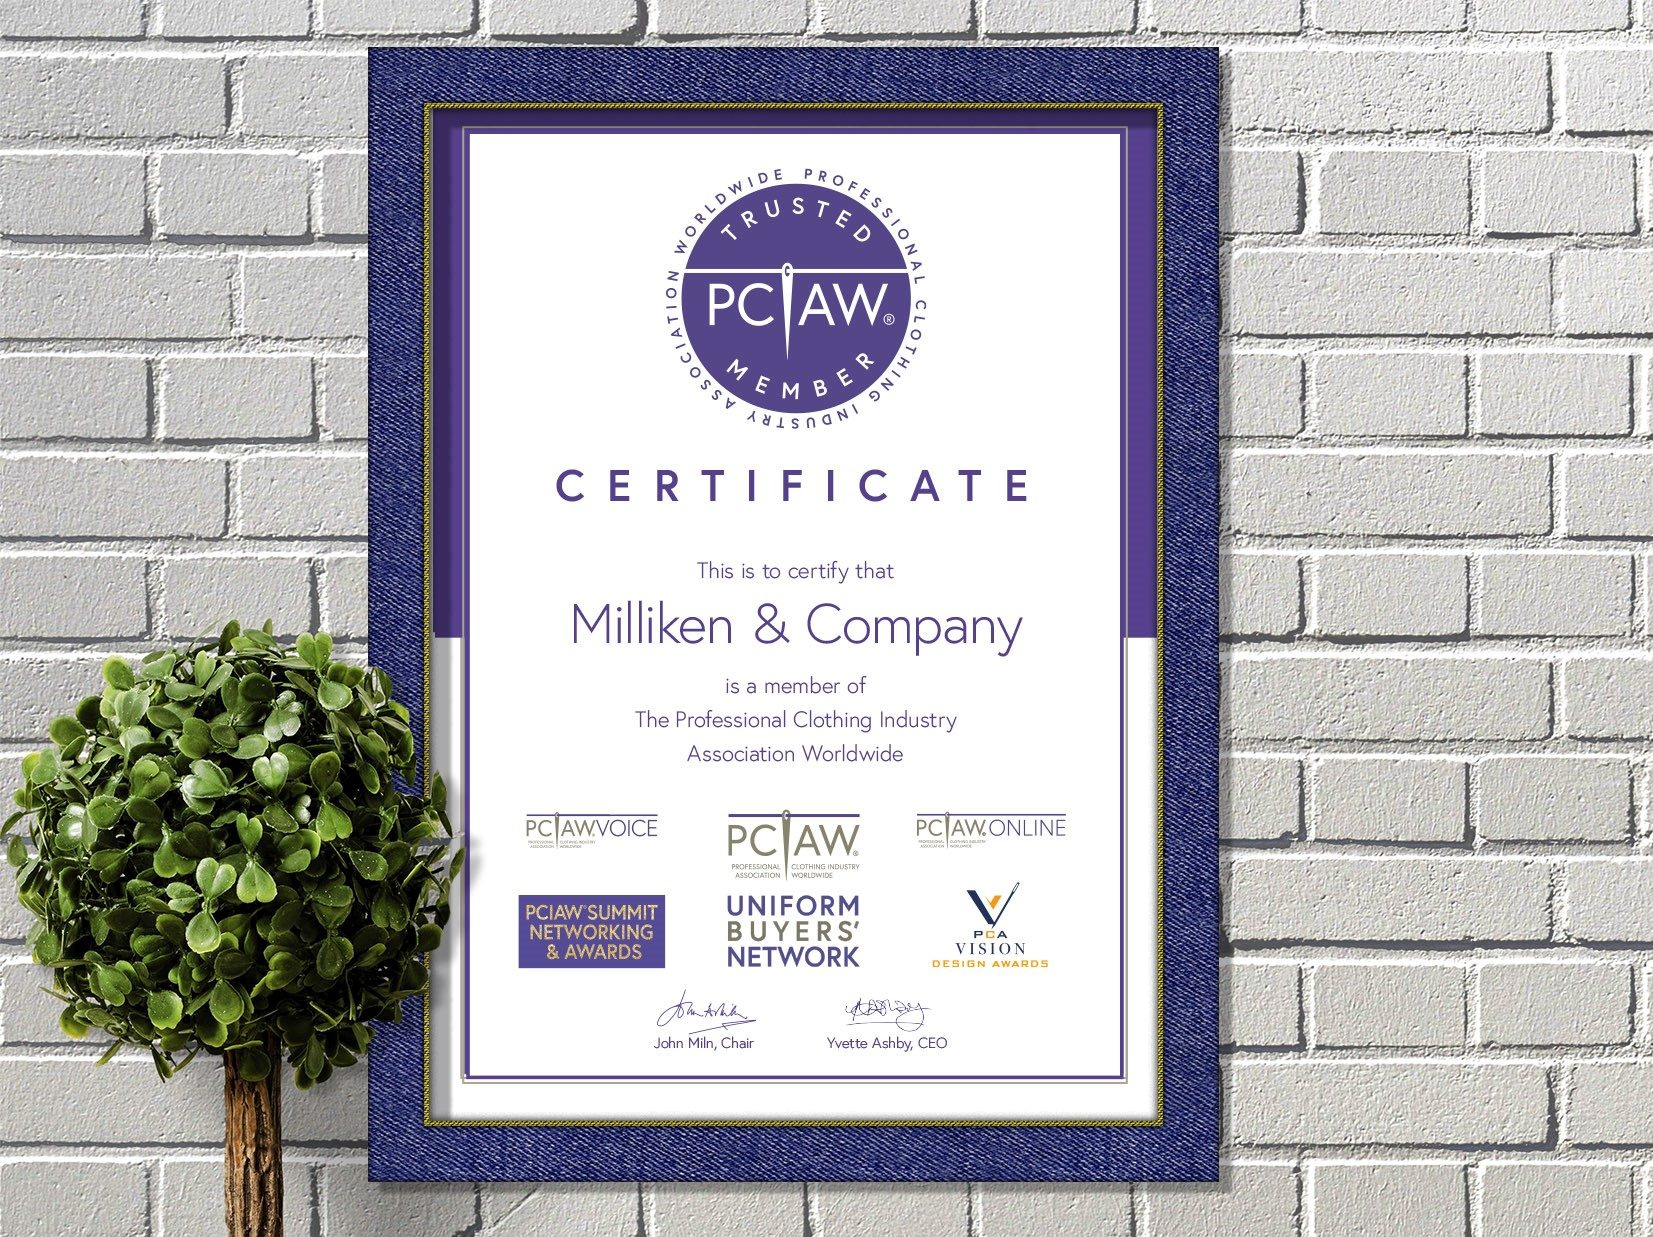 Milliken, a global forerunner in research, design, and manufacturing with expertise in the diverse markets of floor covering, performance and protective textiles, is a proud PCIAW® member and sponsor of the PCIAW® Summit, Networking and Awards 2021.